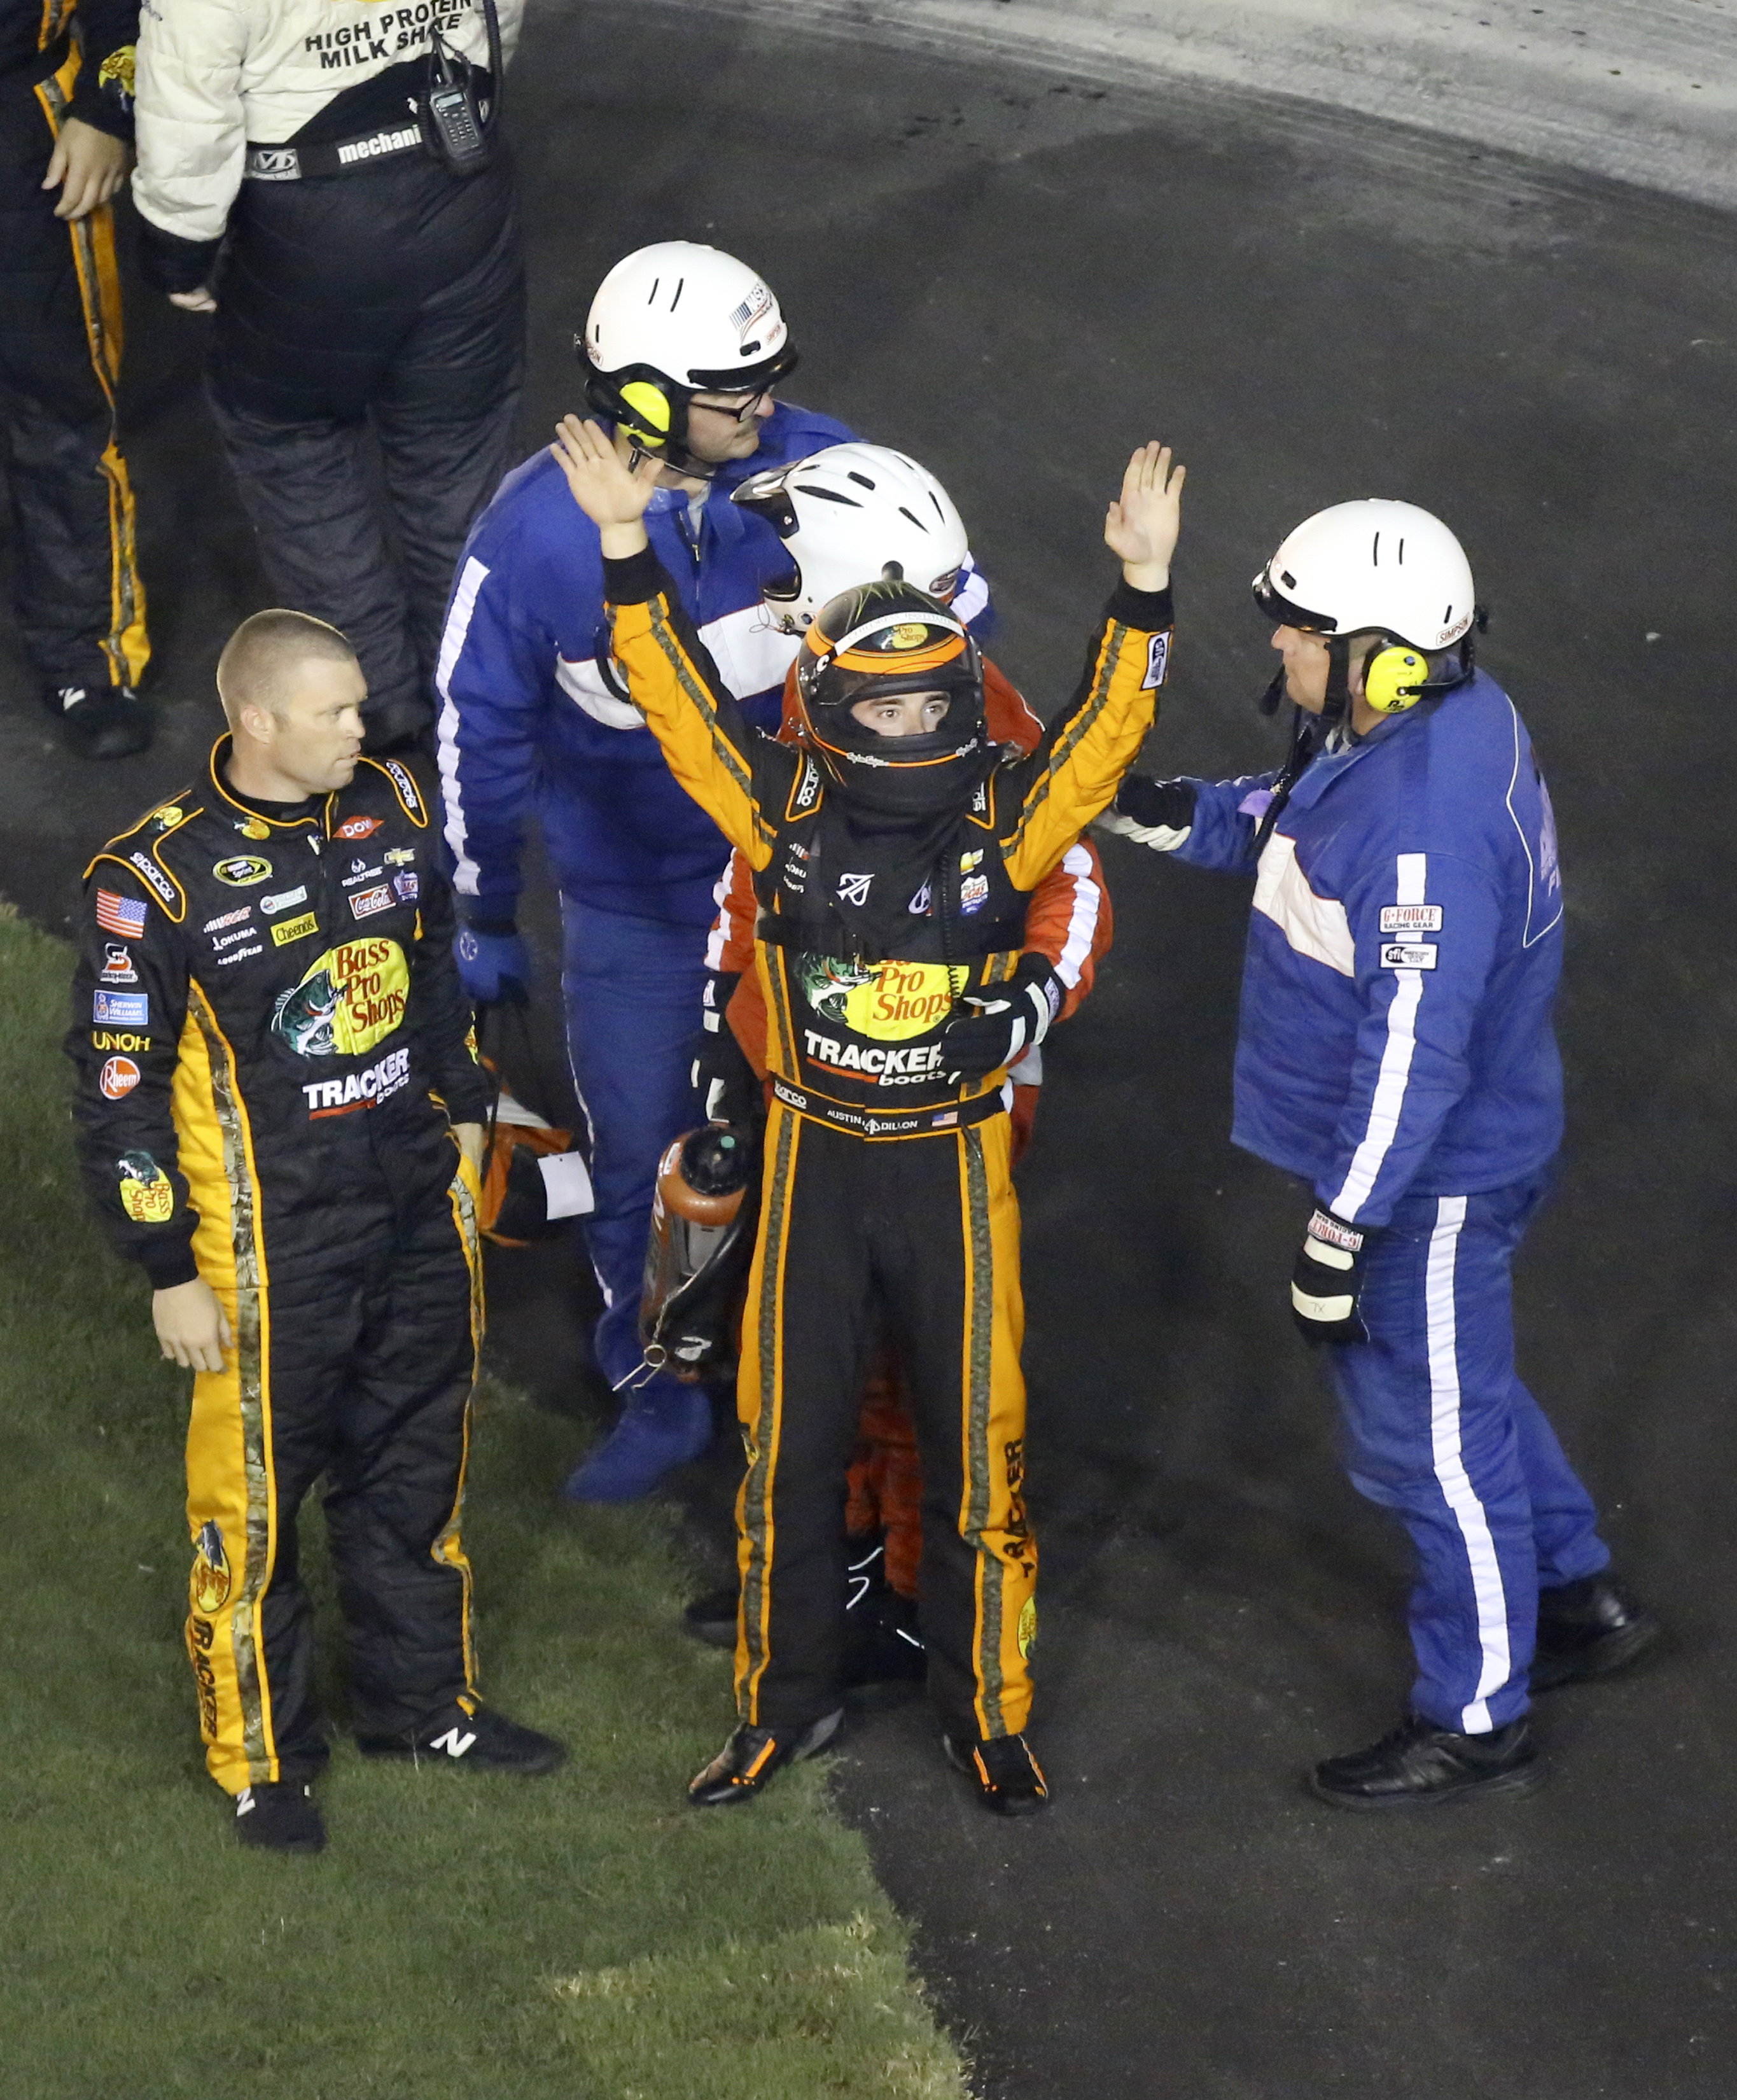 Austin Dillon, center, raises his arms to race fans to signify he was okay after he was involved in a multi-car crash in a NASCAR Sprint Cup series auto race at Daytona International Speedway, Monday, July 6, 2015, in Daytona Beach, Fla. (AP Photo/David G